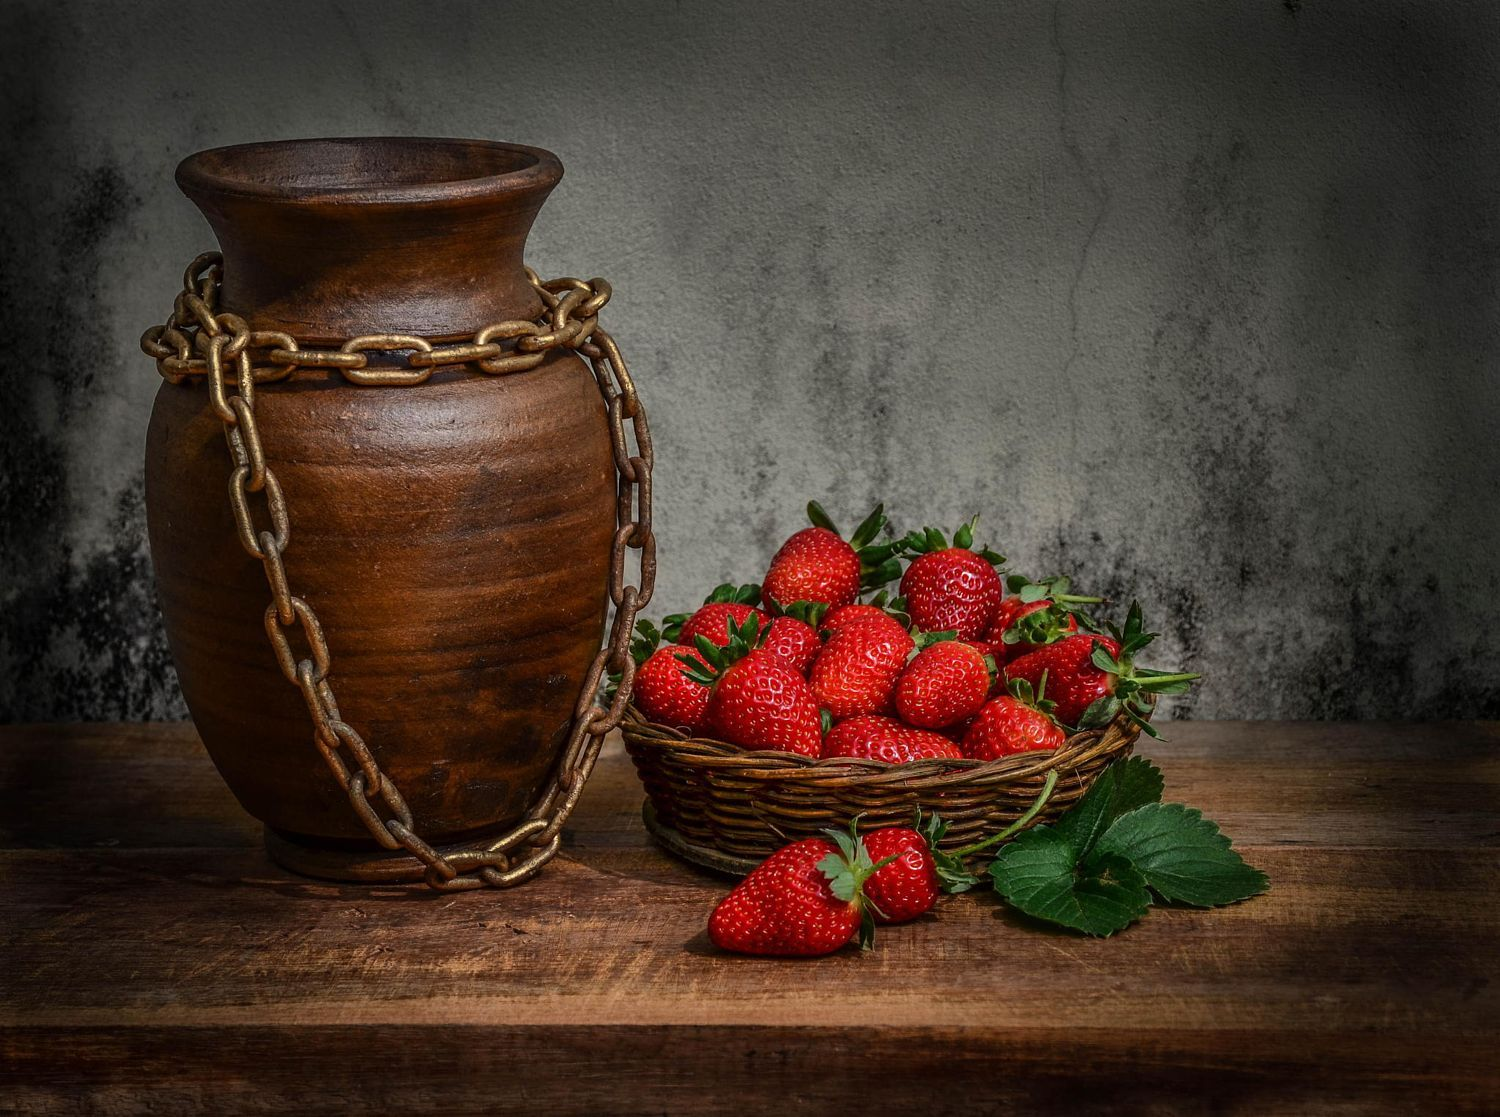 Fresh strawberries by Margareth Photography on 500px